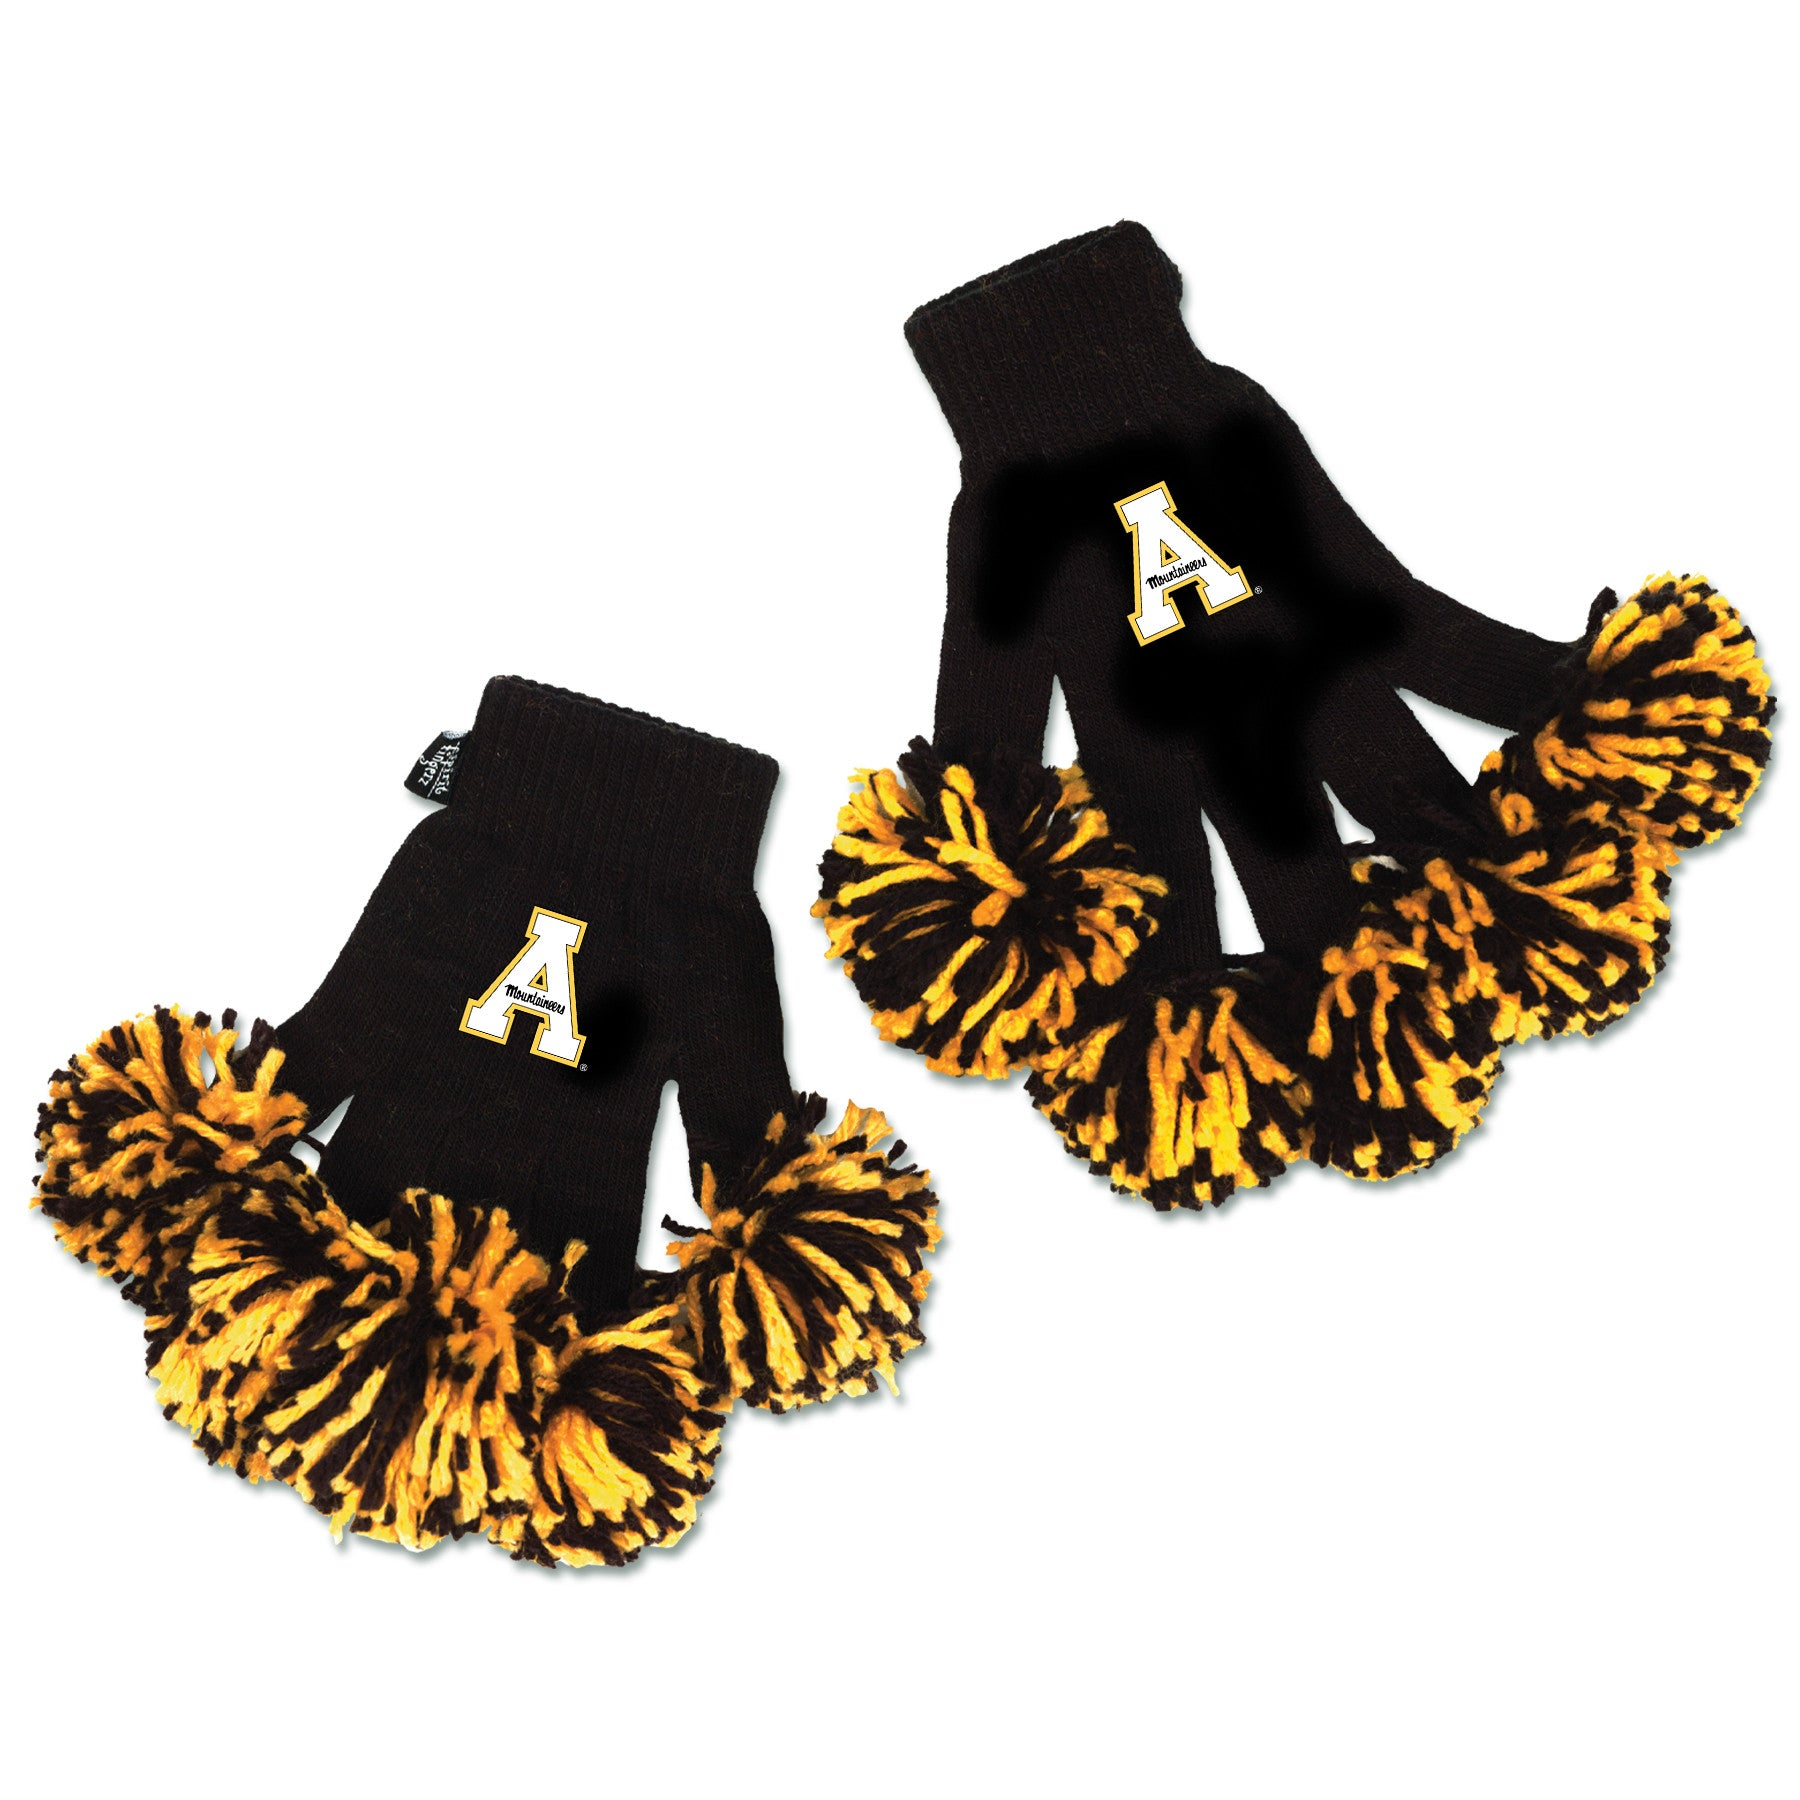 Appalachian State Mountaineers NCAA Spirit Fingerz Cheerleading Pom-Pom Gloves